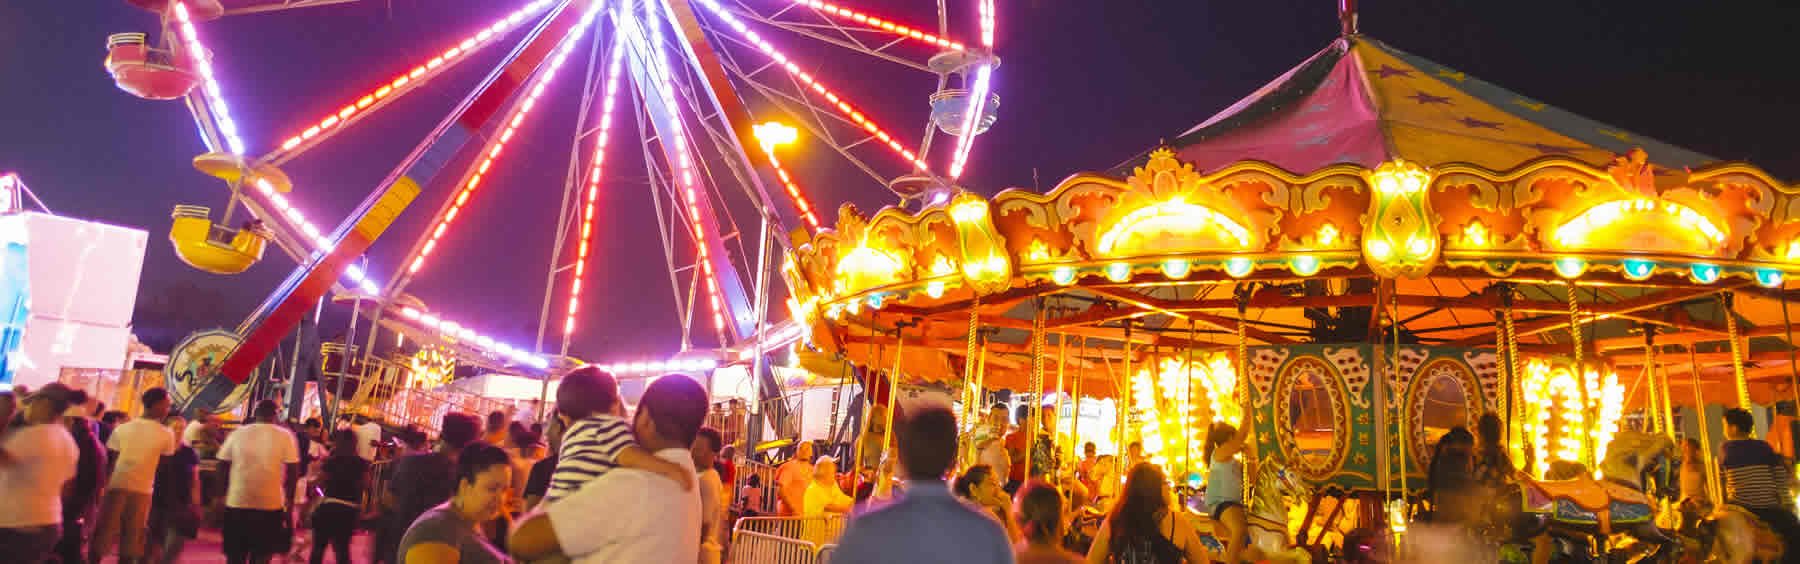 Get mobile ATM services and machines for seasonal events such as concerts, and festivals from Funds Access Inc.